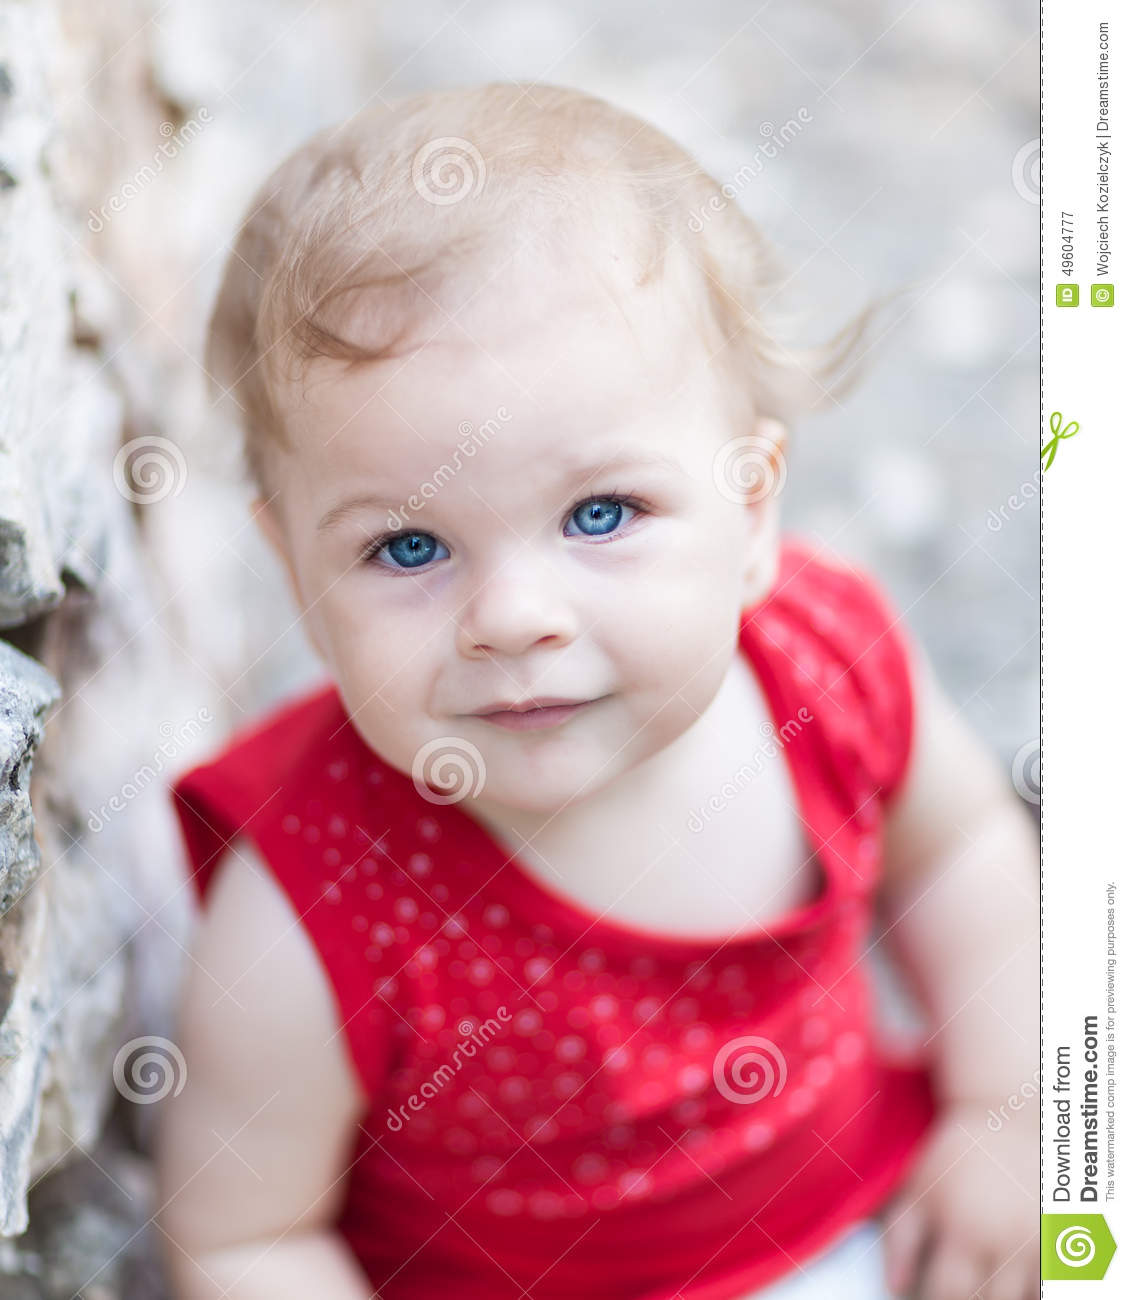 Cute Baby Girl Very Shallow Depth Of Field Stock Image Image Of